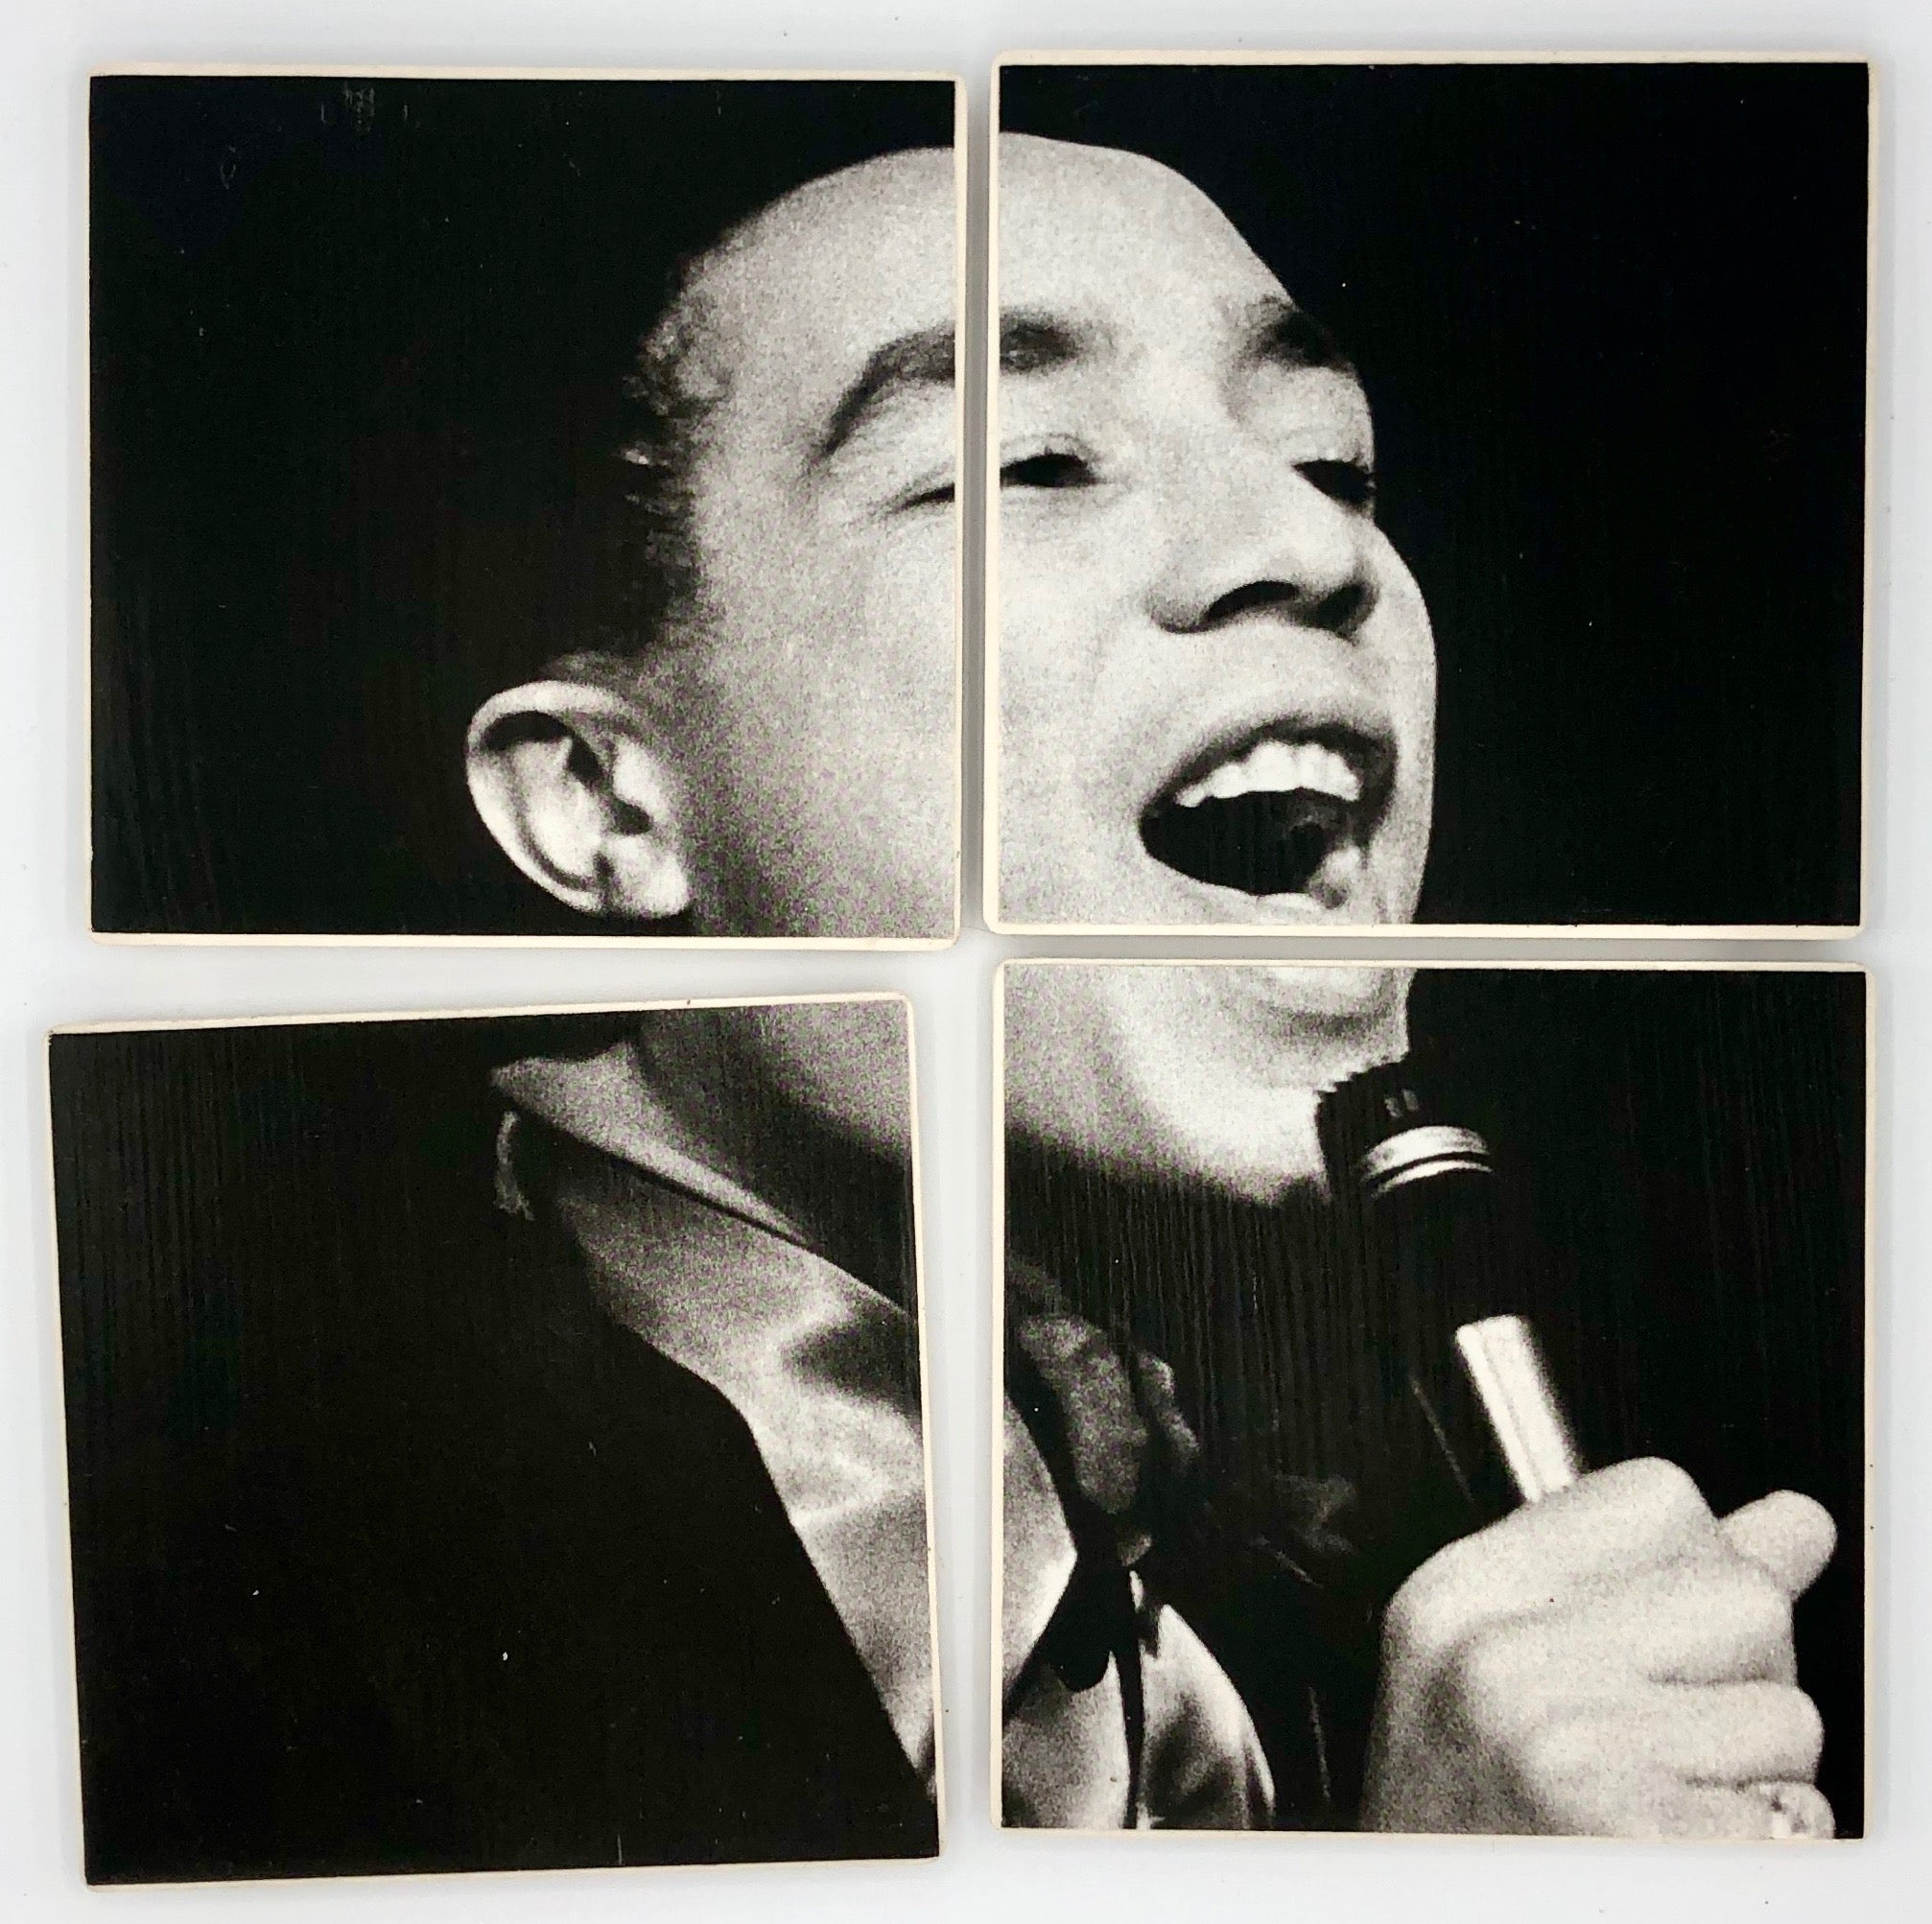 SMOKEY ROBINSON - that voice